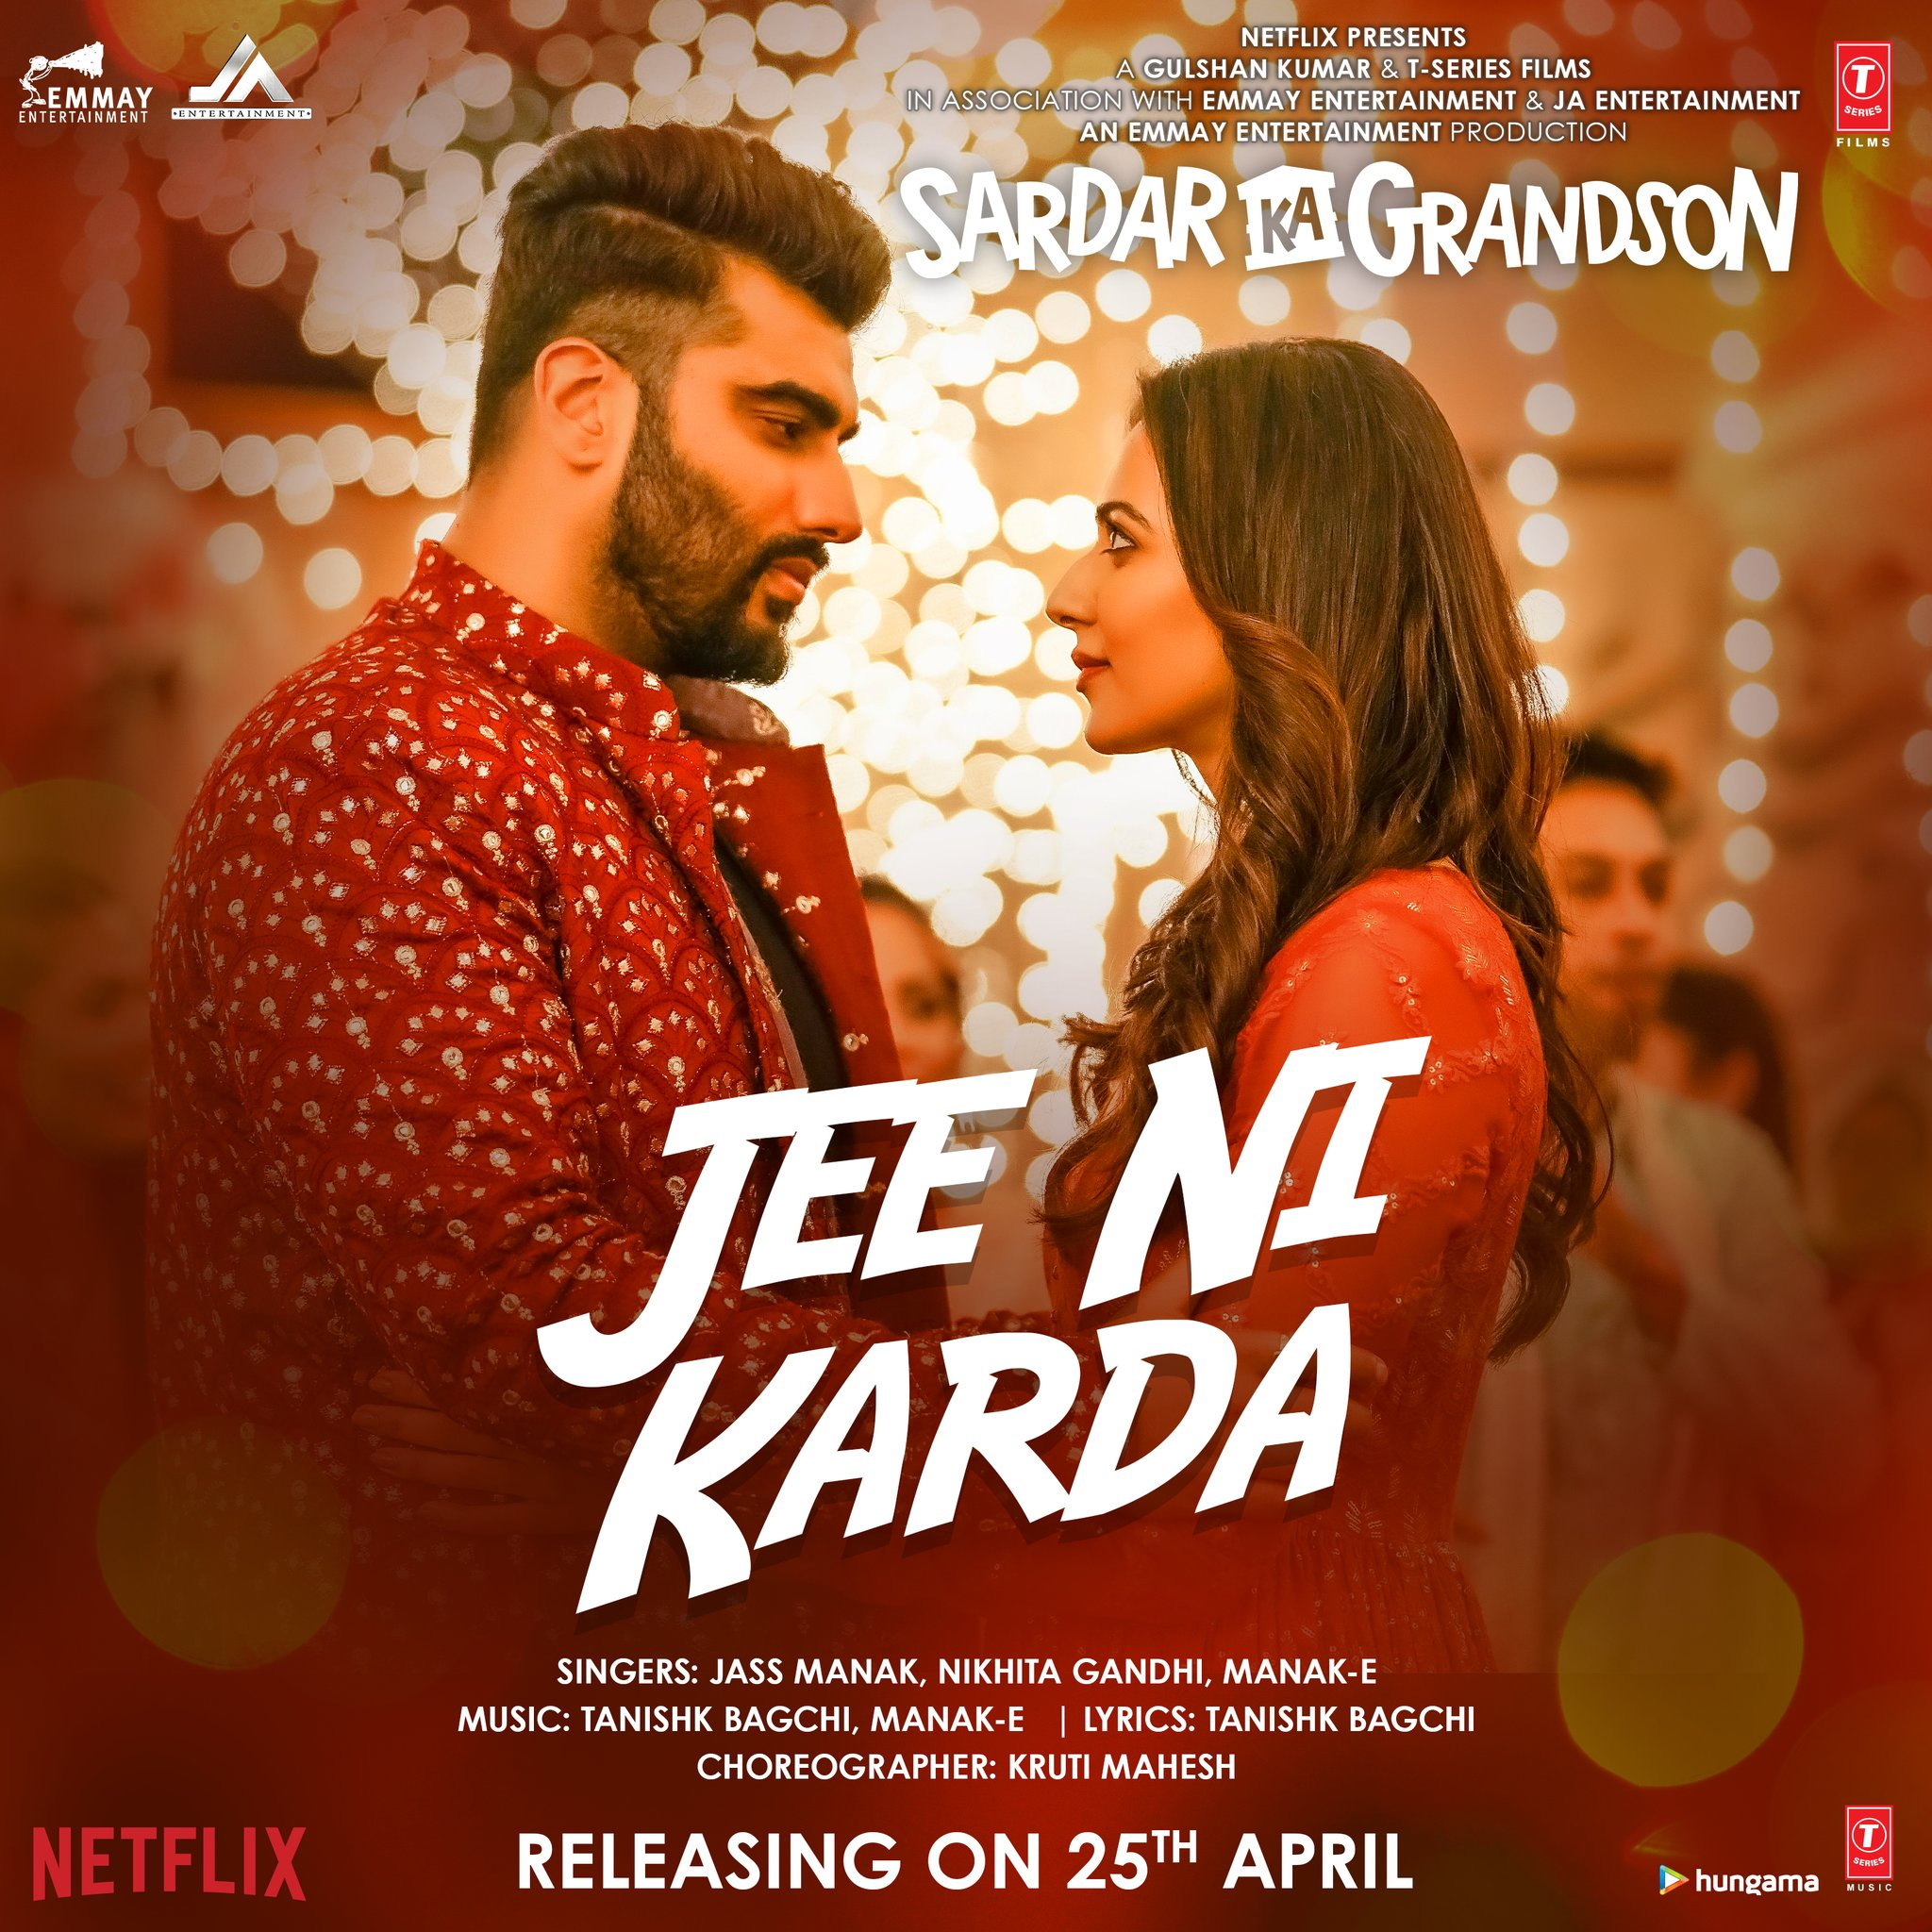 Jee Ni Karda (Sardar Ka Grandson) 2021 Hindi Video Song 1080p HDRip 50MB Download